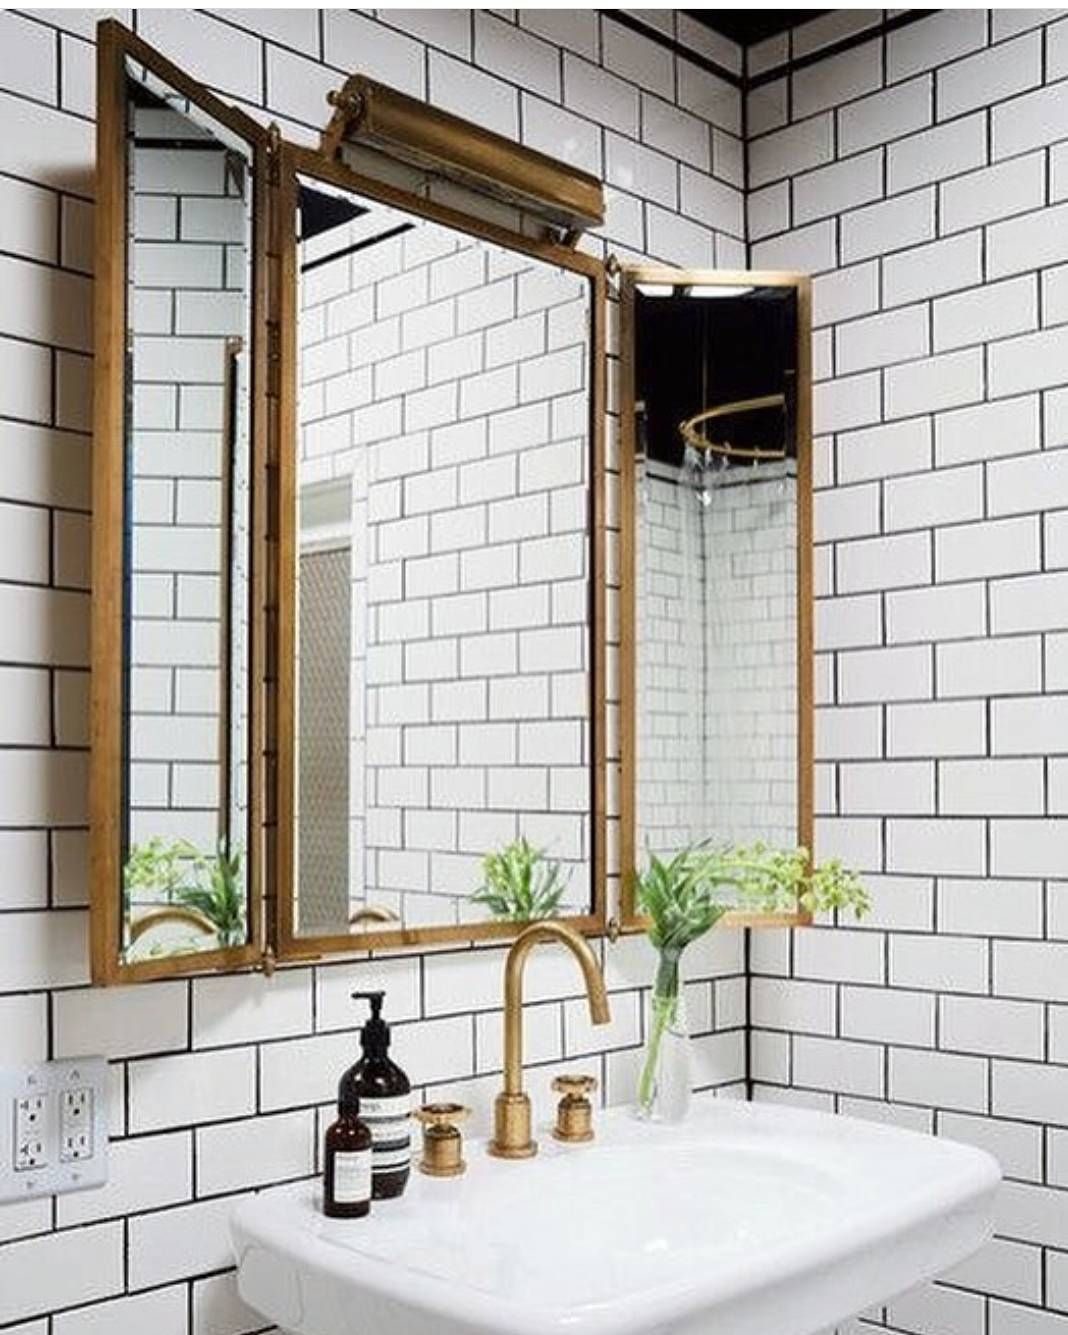 Floor To Ceiling White Subway Tile Black Grout And Brass Fixtures What Is Not To Love Ab Bathroom Tile Designs White Subway Tile Bathroom Bathroom Interior